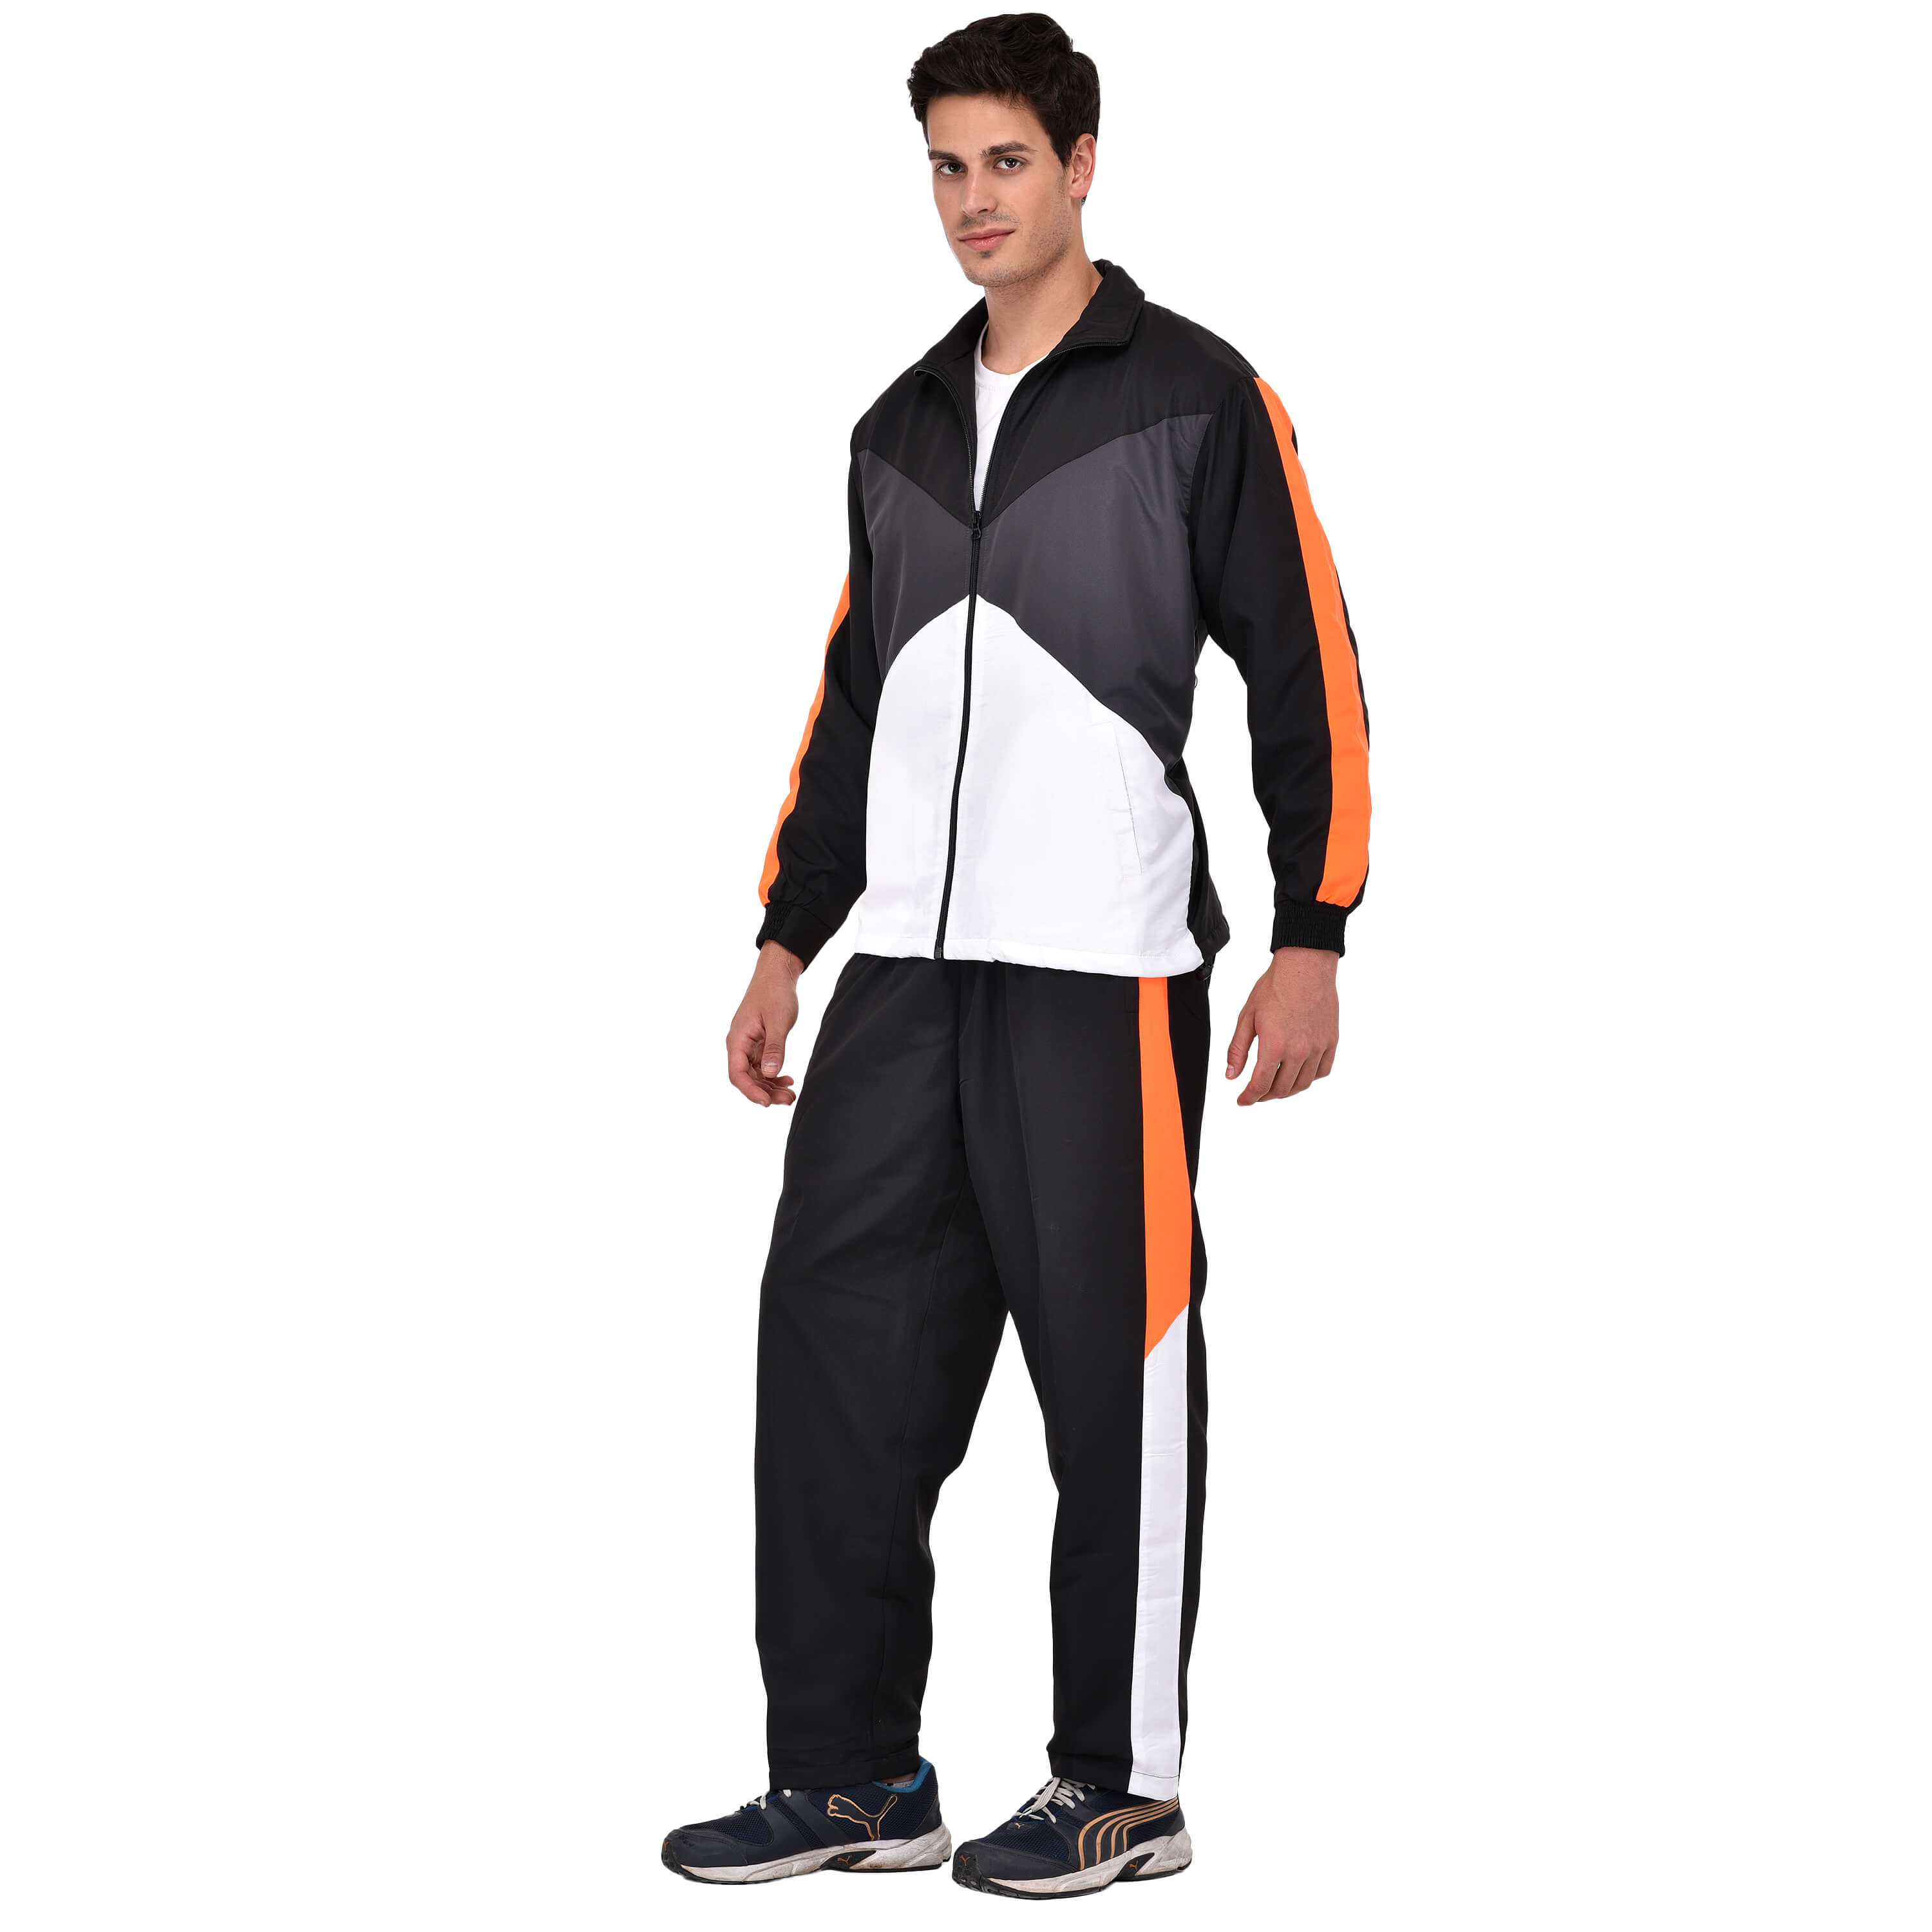 Designer Tracksuits Manufacturers, Wholesale Suppliers